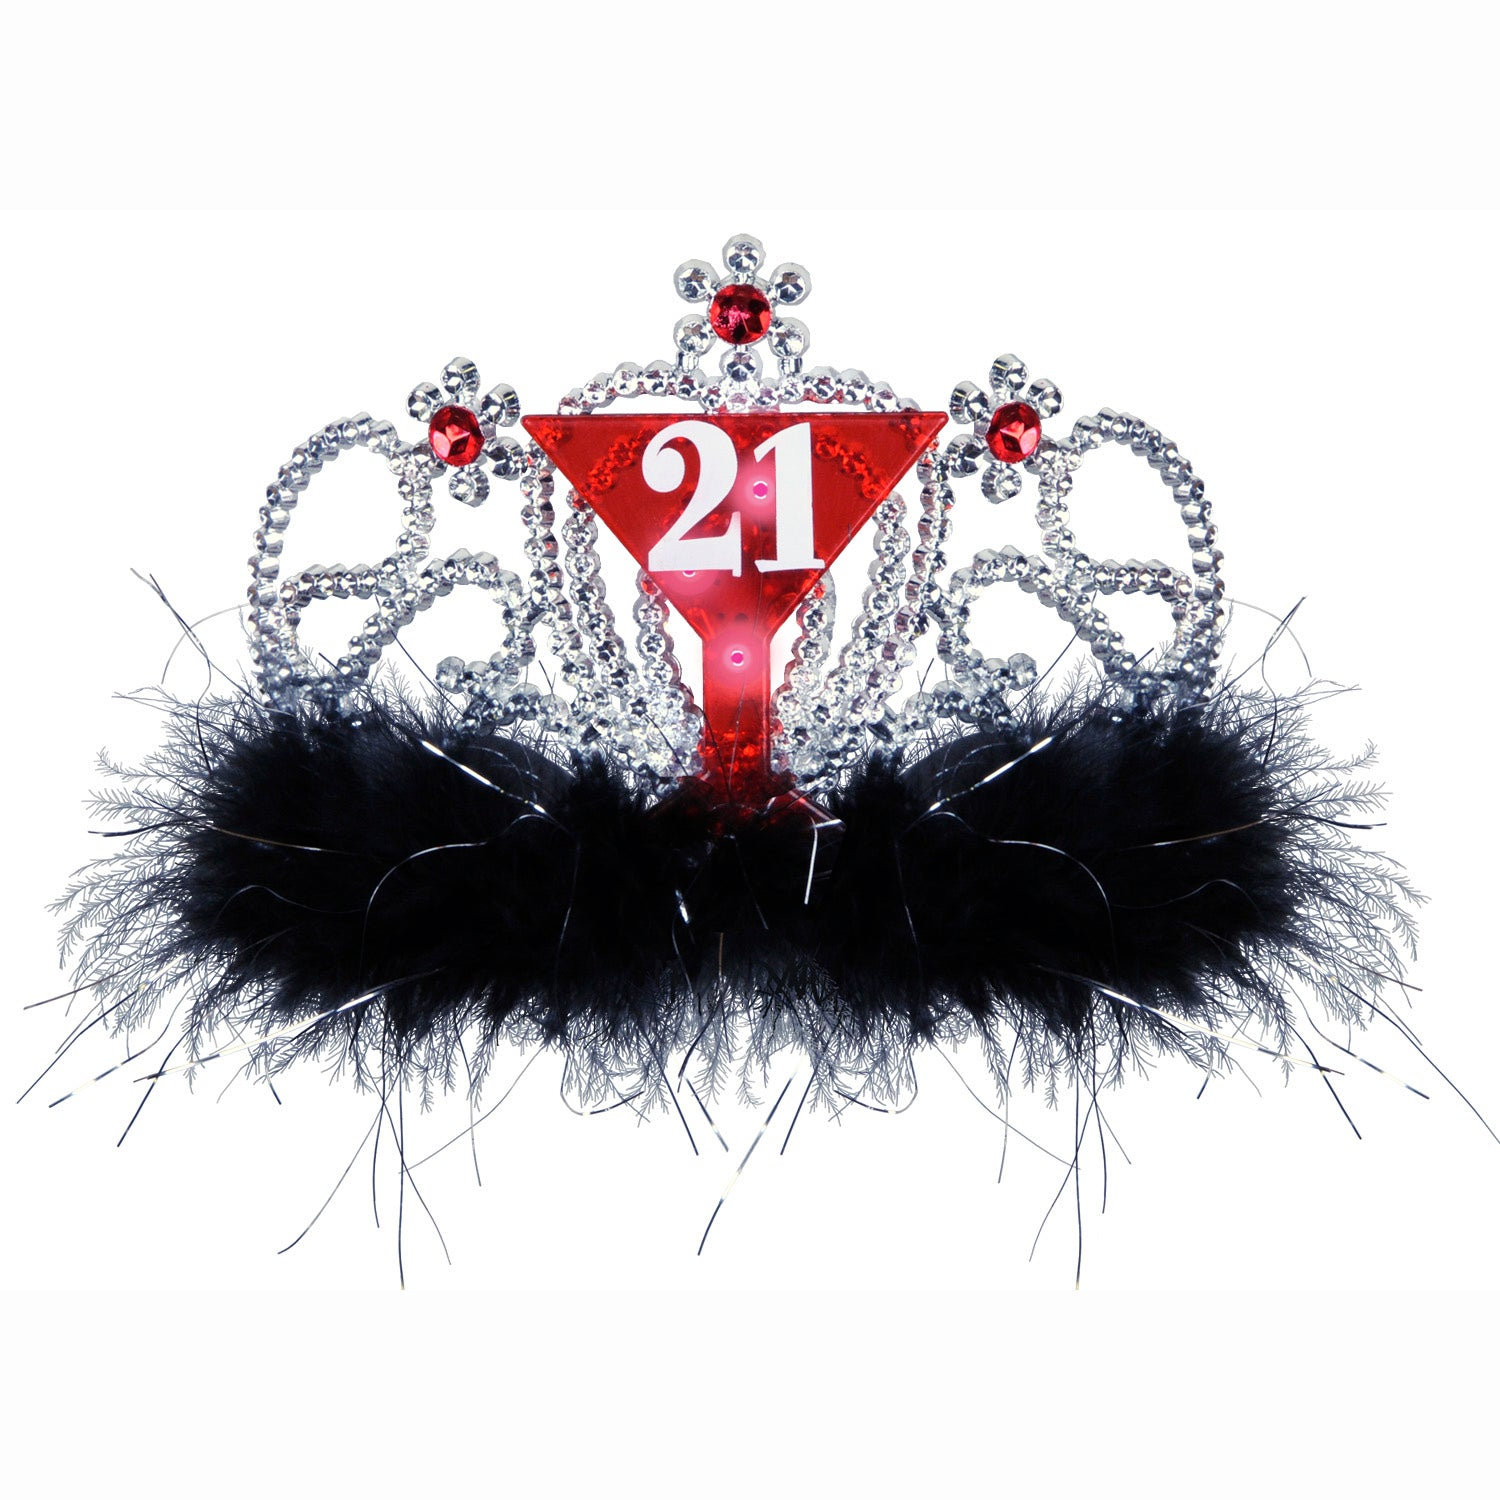 Plastic Light-Up 21 Tiara by Beistle - 21st Birthday Theme Decorations